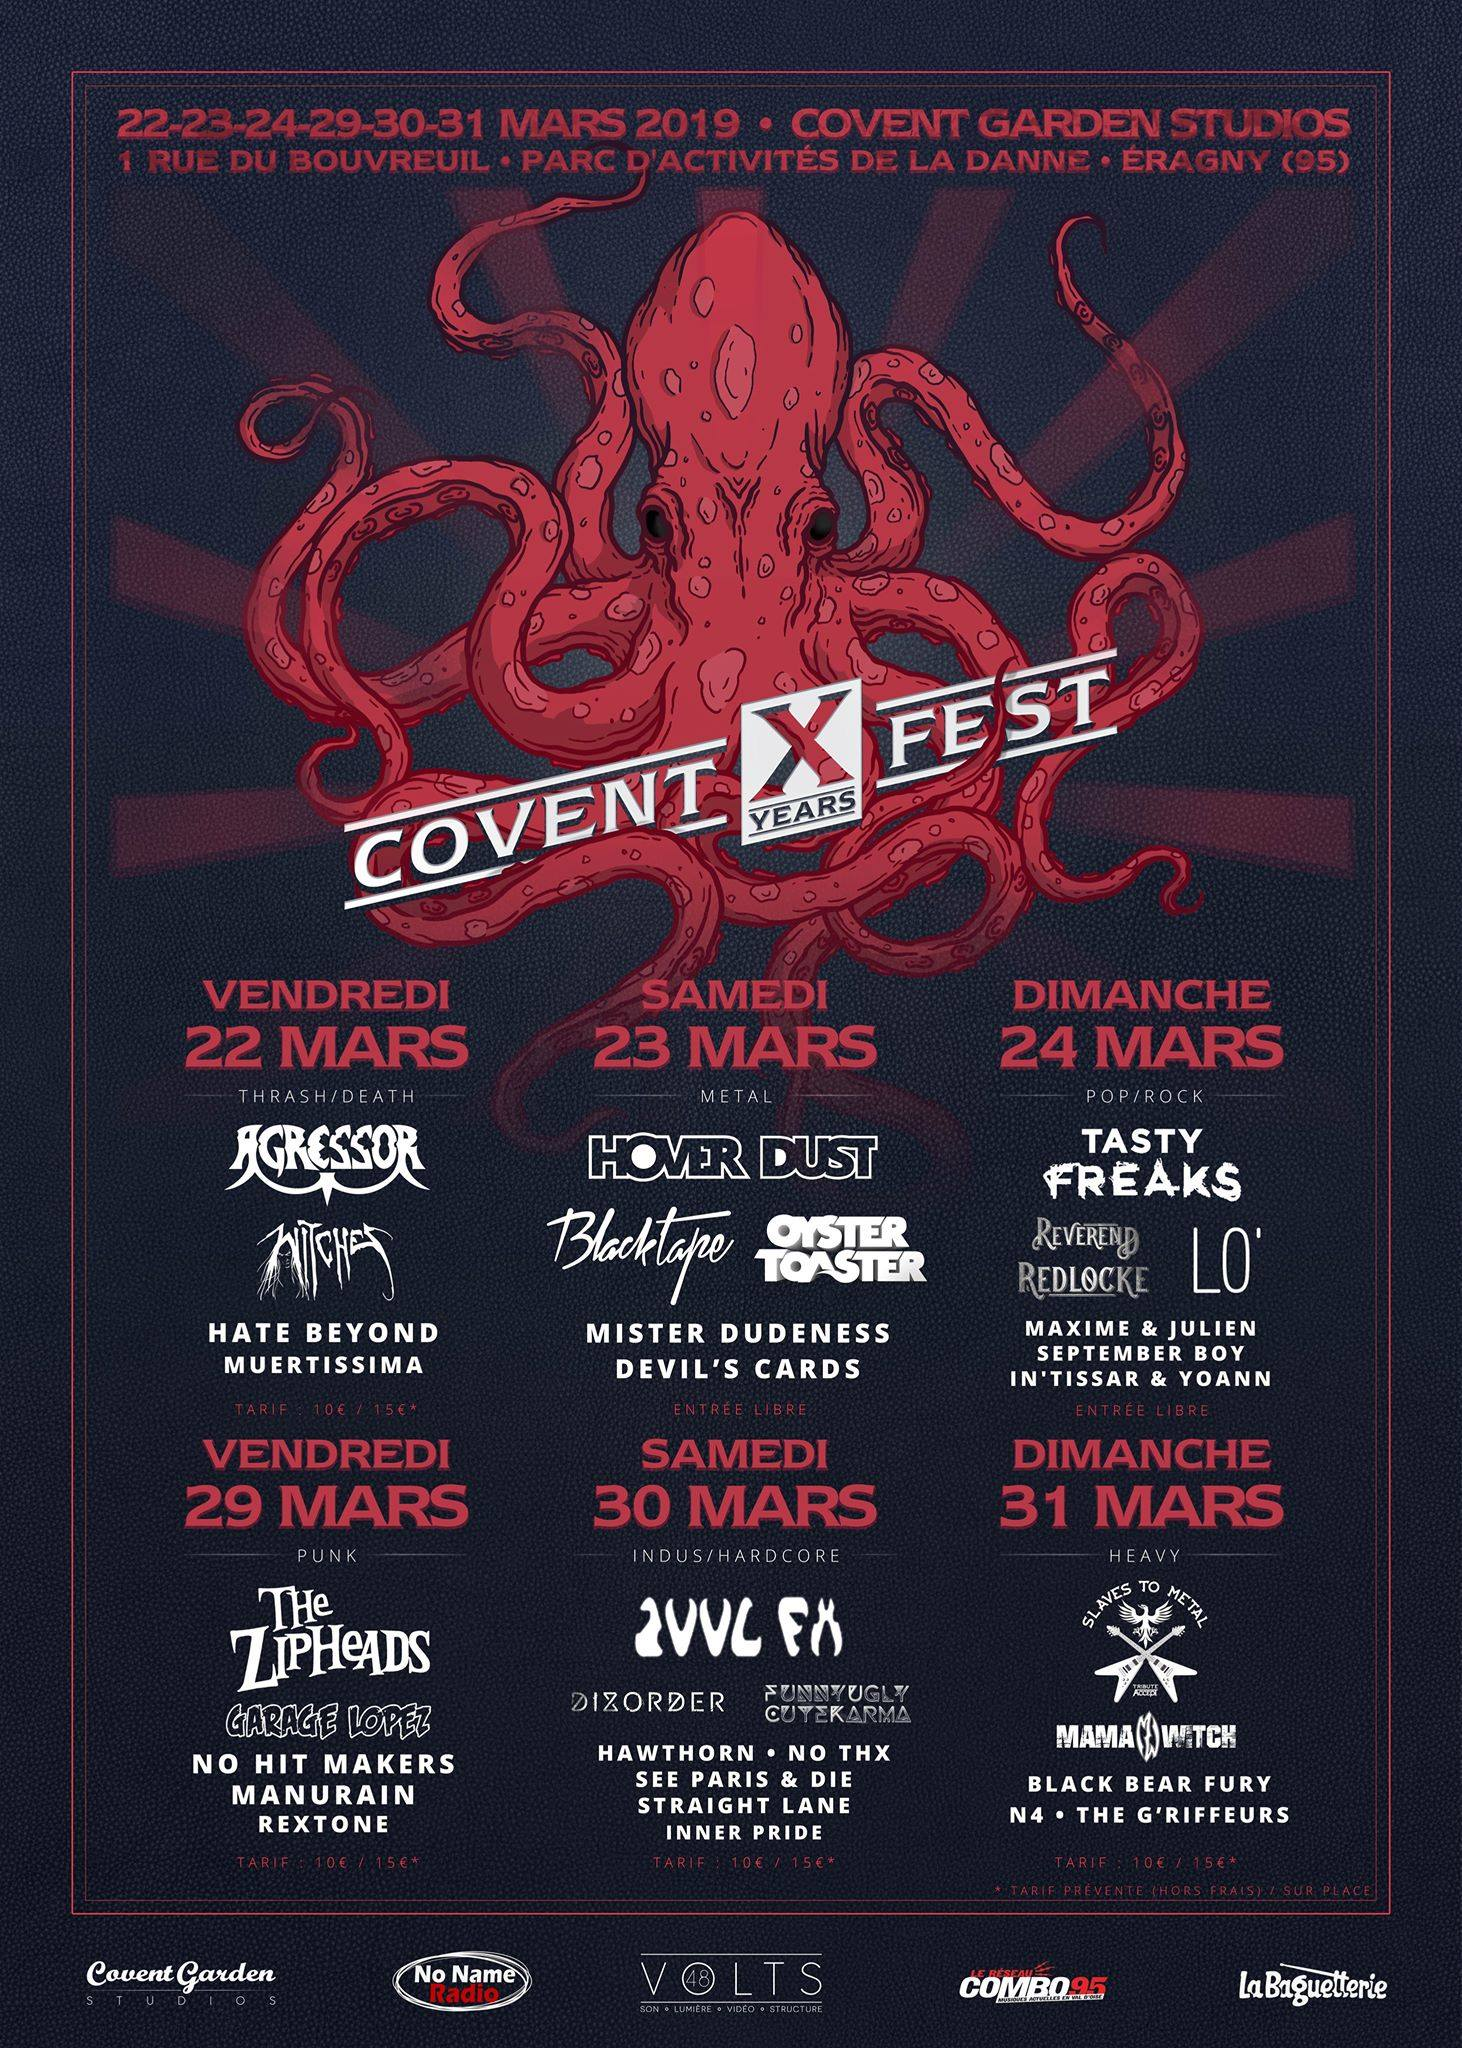 Witches flyer Agressor + Witches + Hate Beyond (JPN) + Muertissima @ Covent X Years Fest Covent Garden Eragny (95), Fr